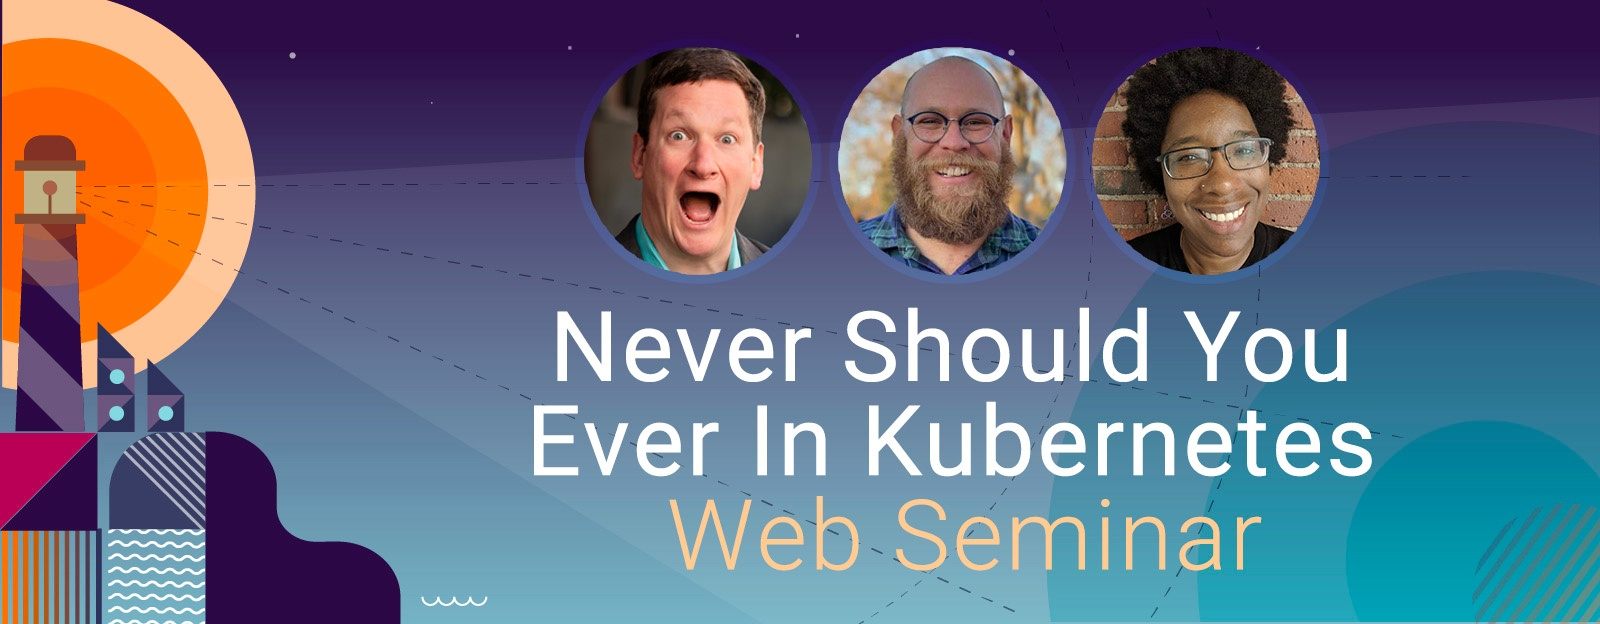 Never Should You Ever in Kubernetes